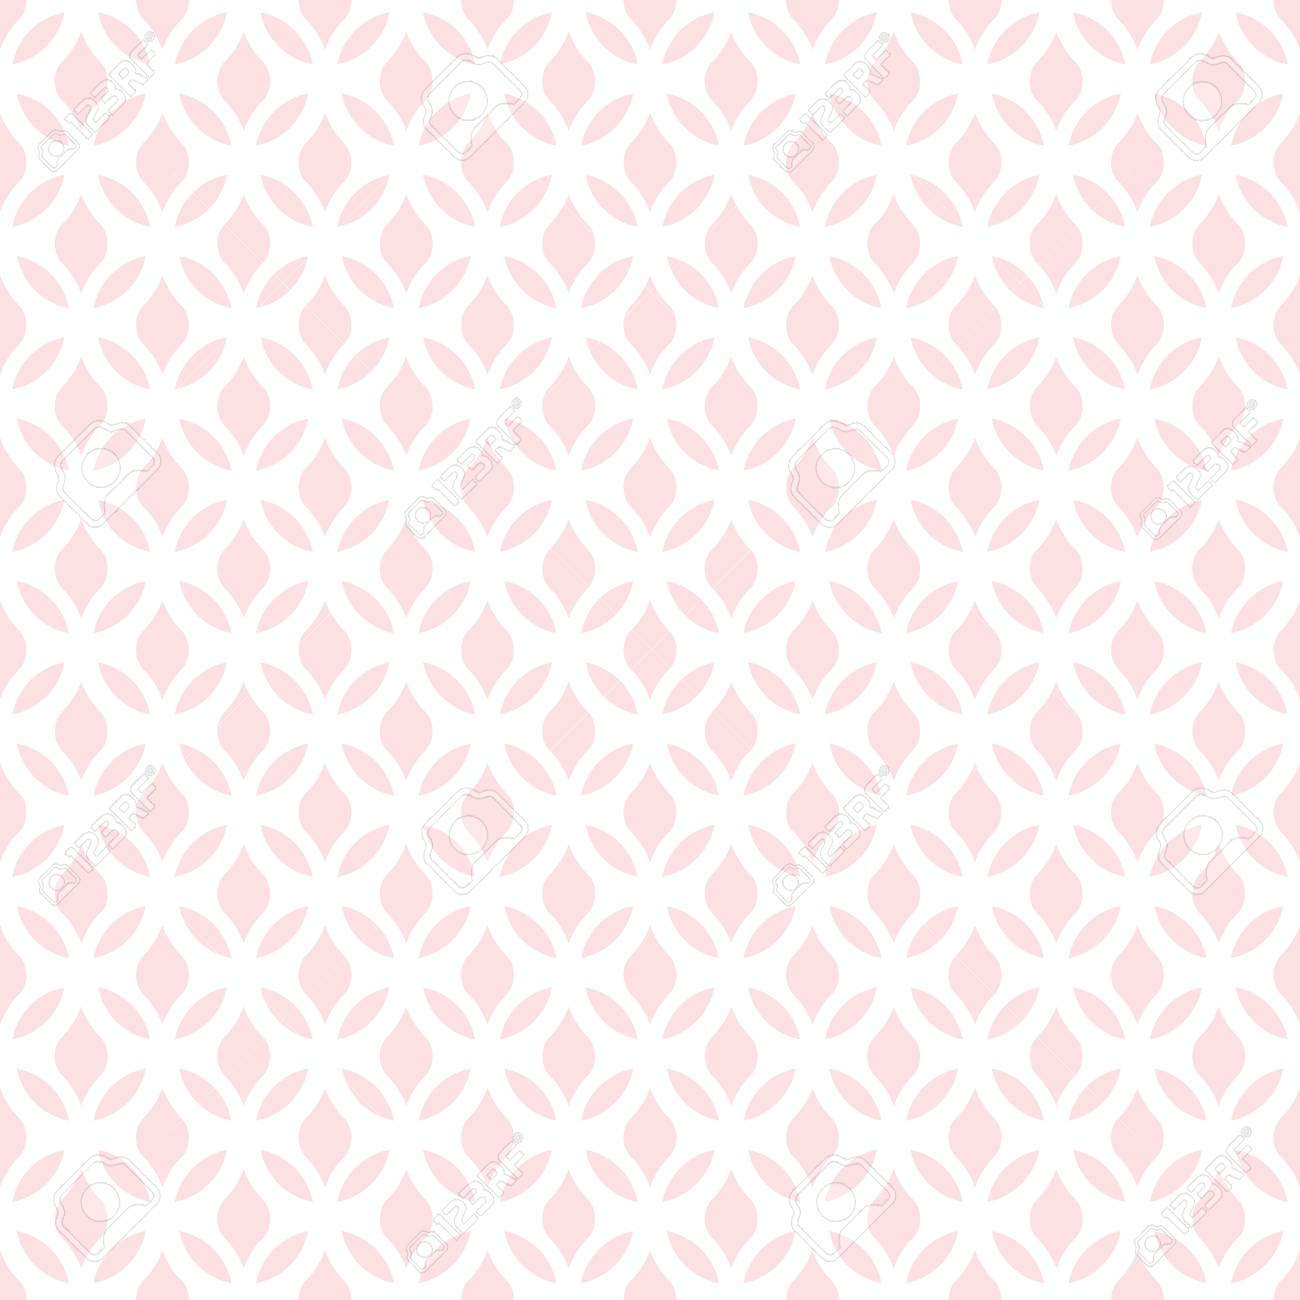 Floral Pattern Wallpaper Seamless Vector Background Pink And